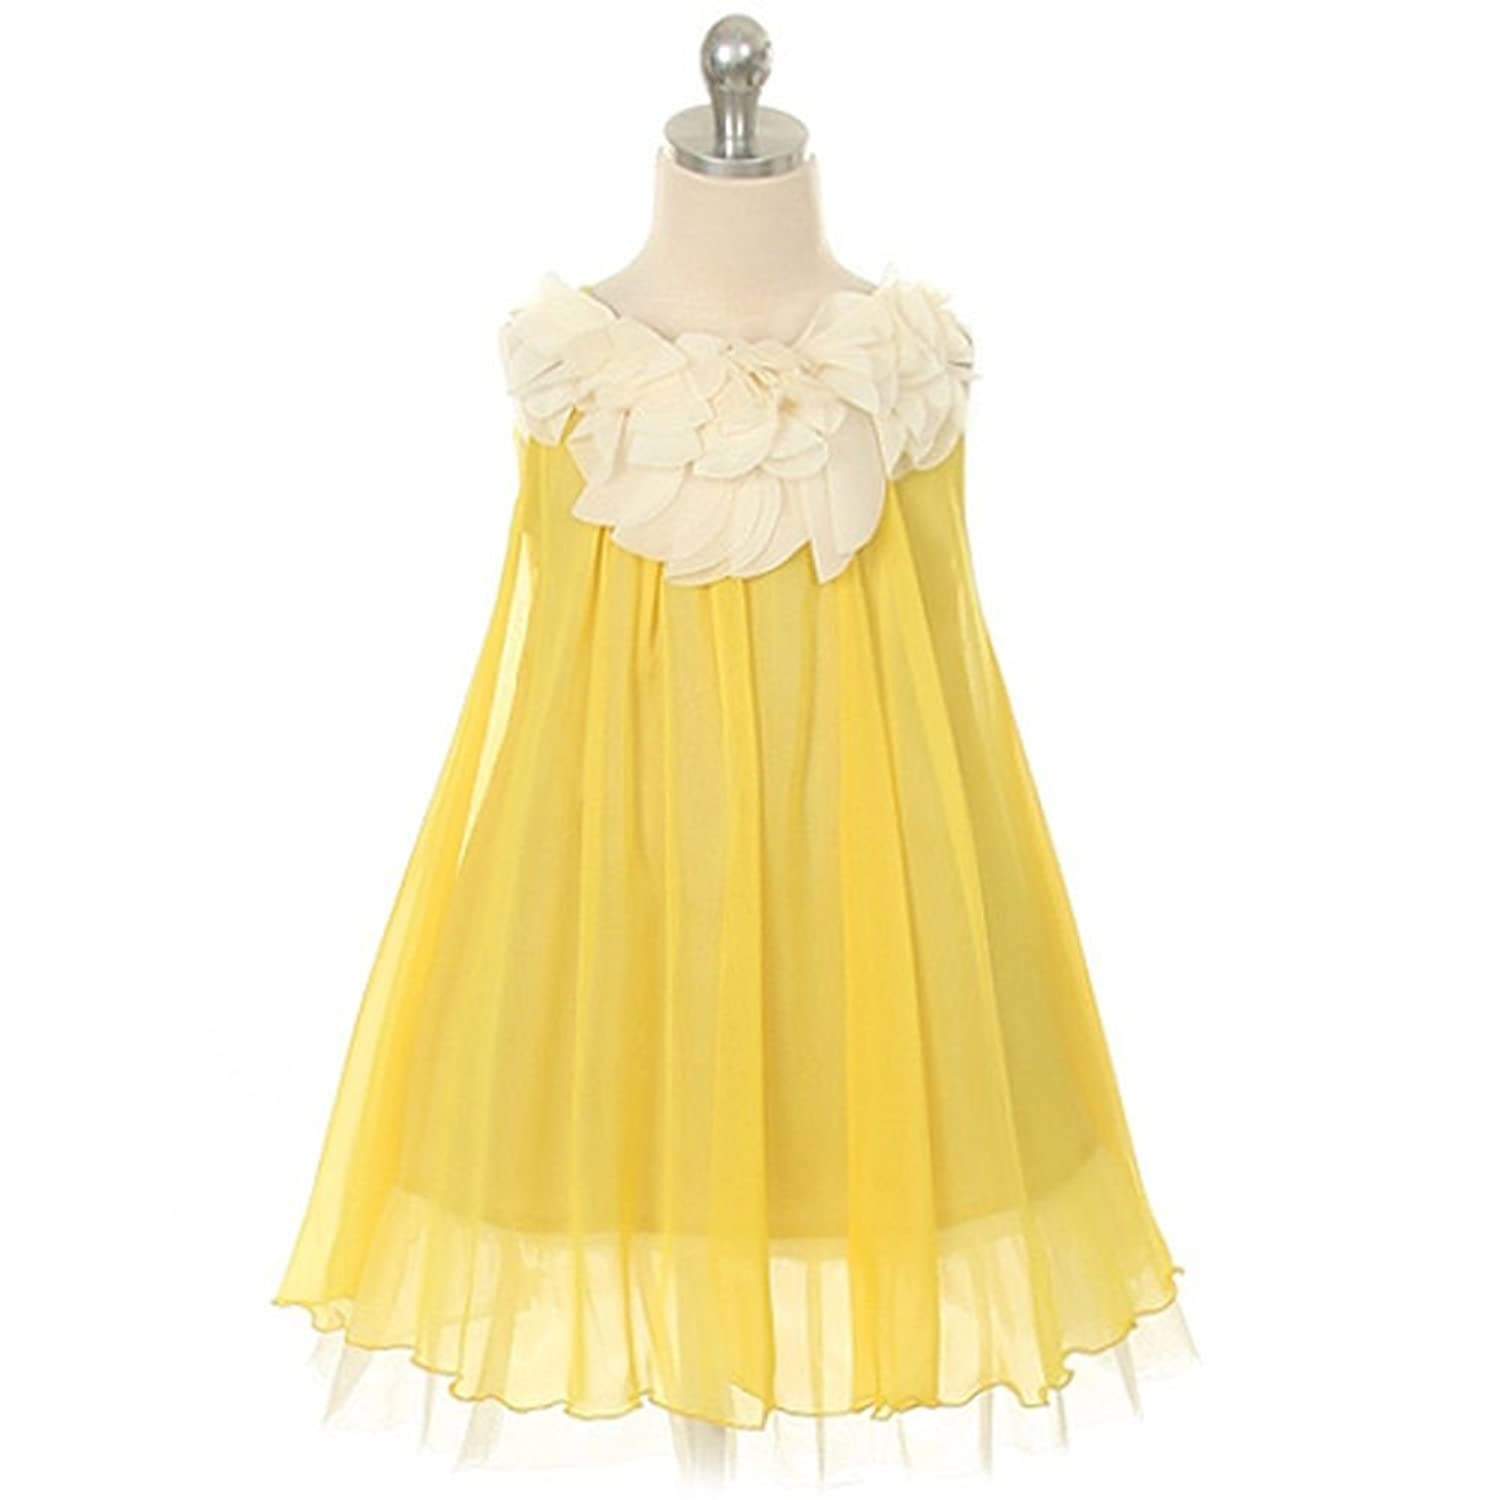 Amazon kids dream yellow chiffon floral lace bodice easter amazon kids dream yellow chiffon floral lace bodice easter dress girls 2t 14 baby mightylinksfo